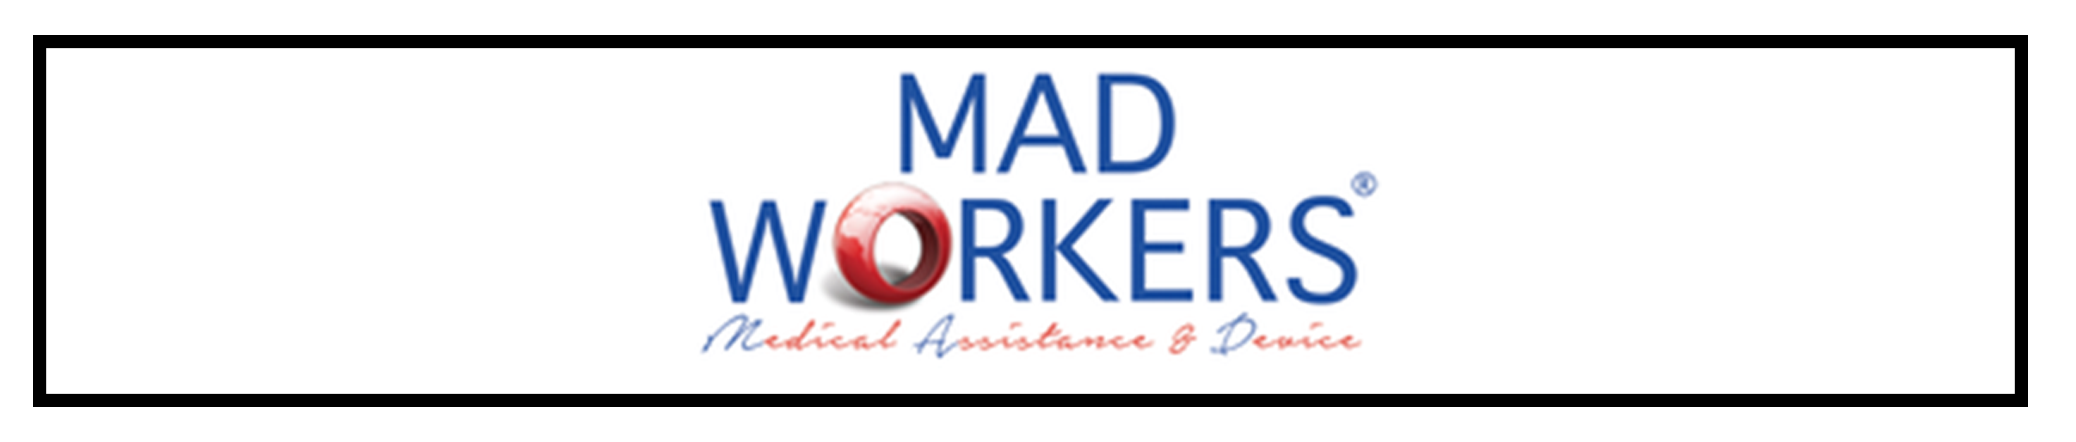 Logo for MadWorkers - Medical Assistance & Devices